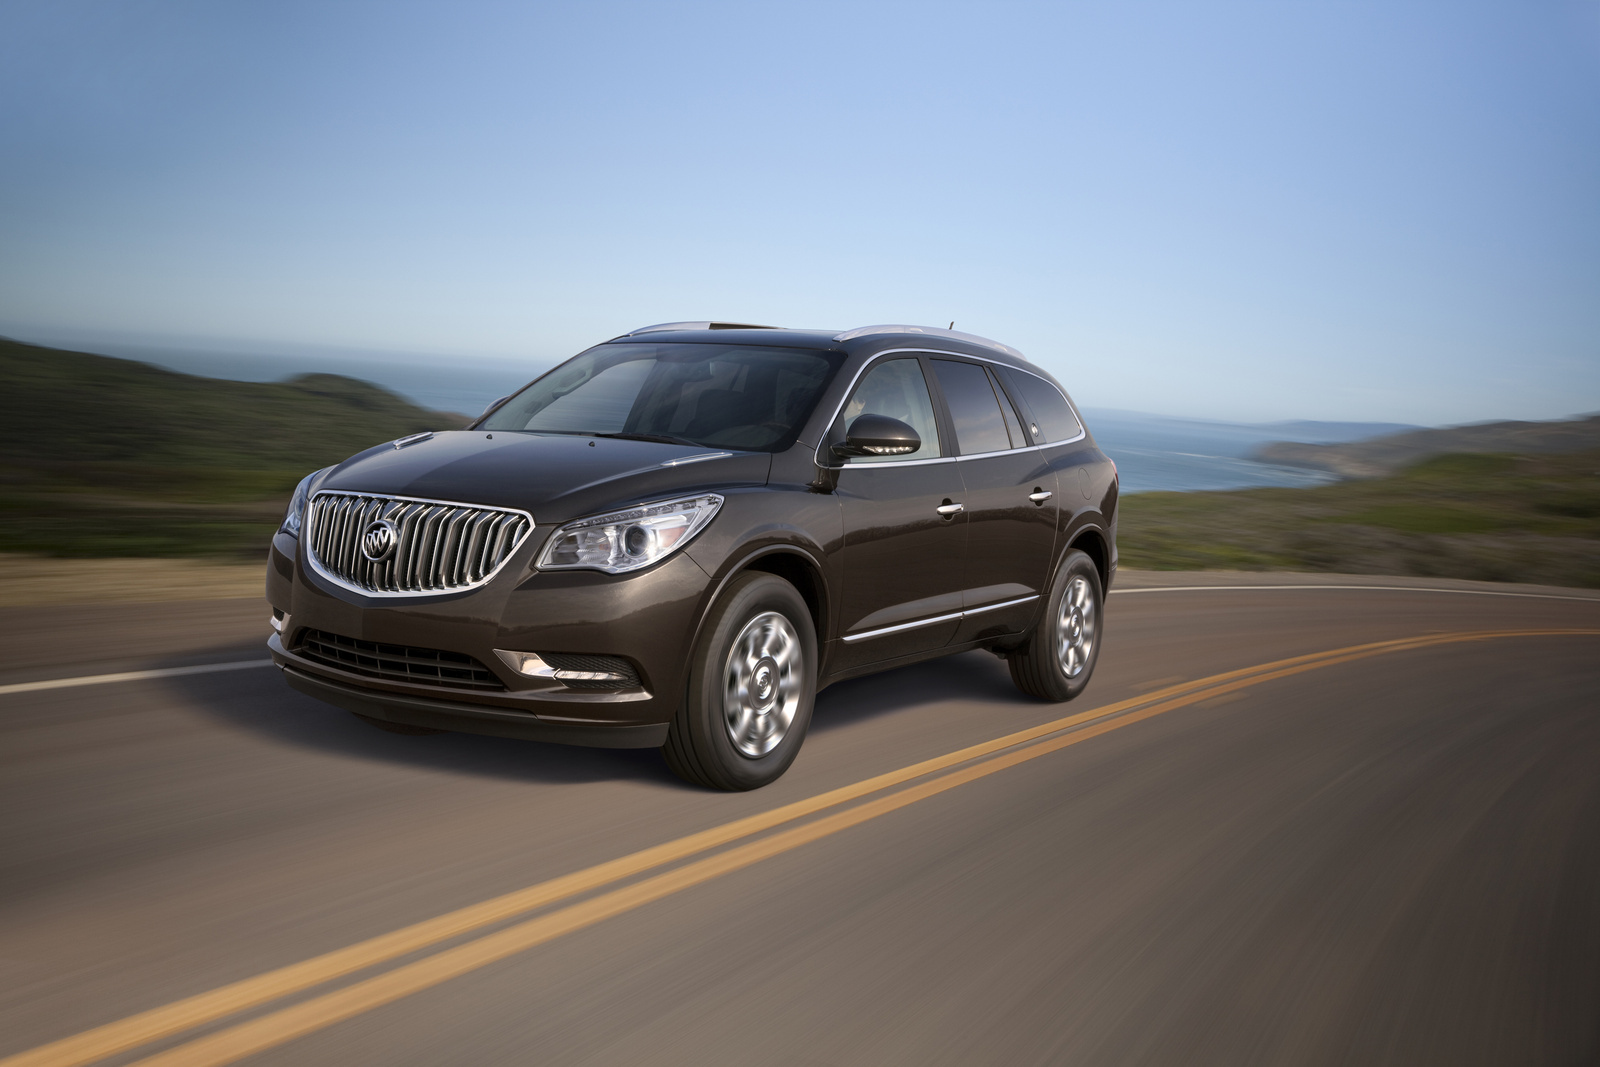 test trend buick awd first side truck reviews view enclave prevnext